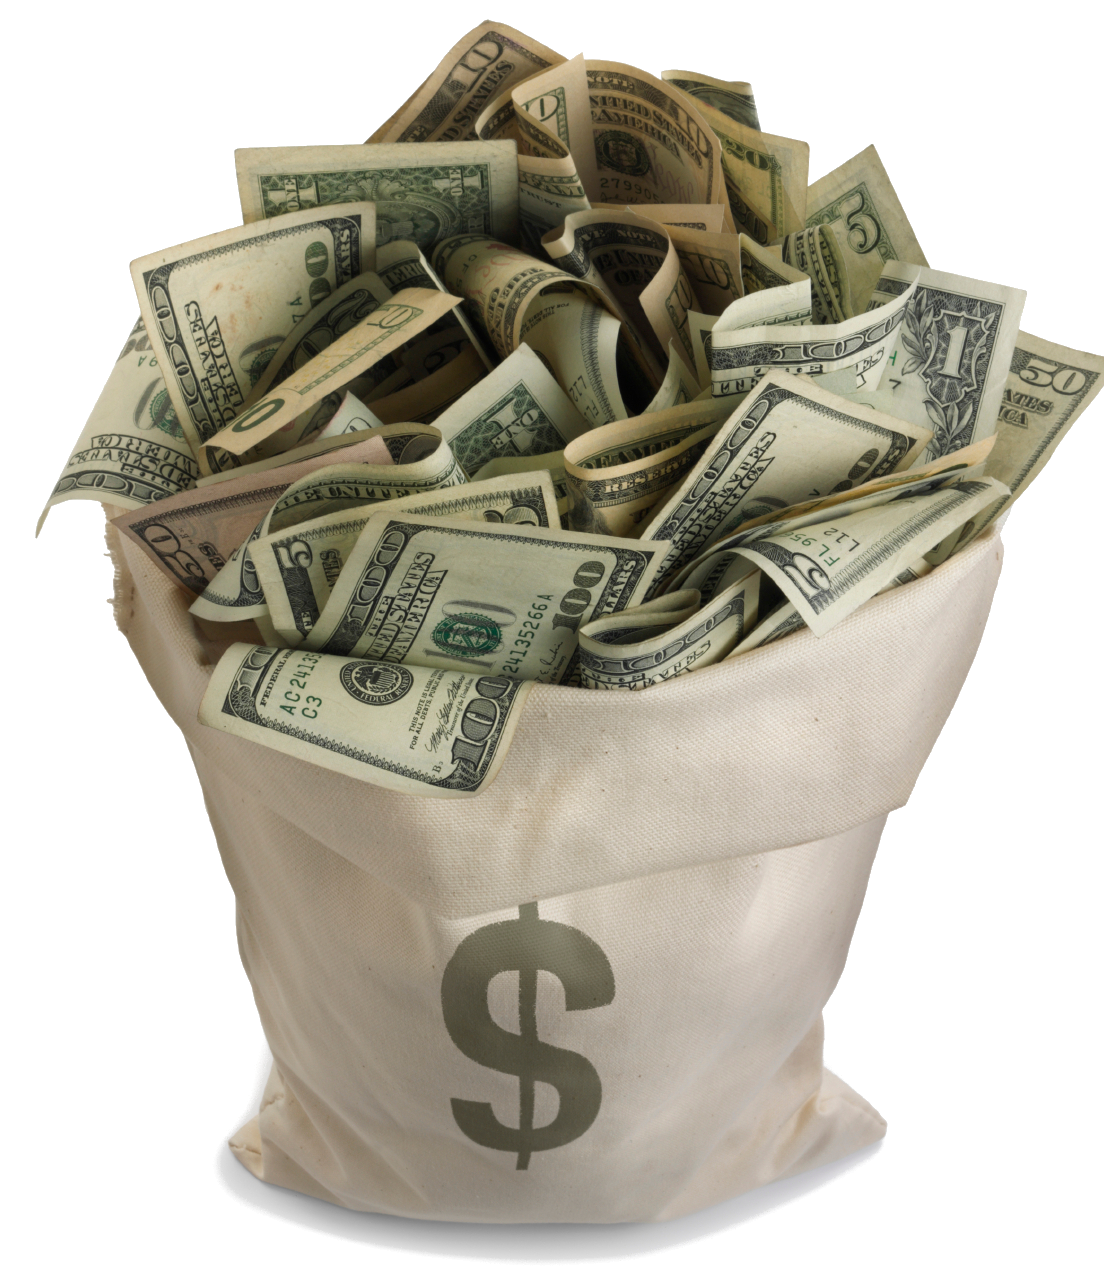 Money image png. How much cash should